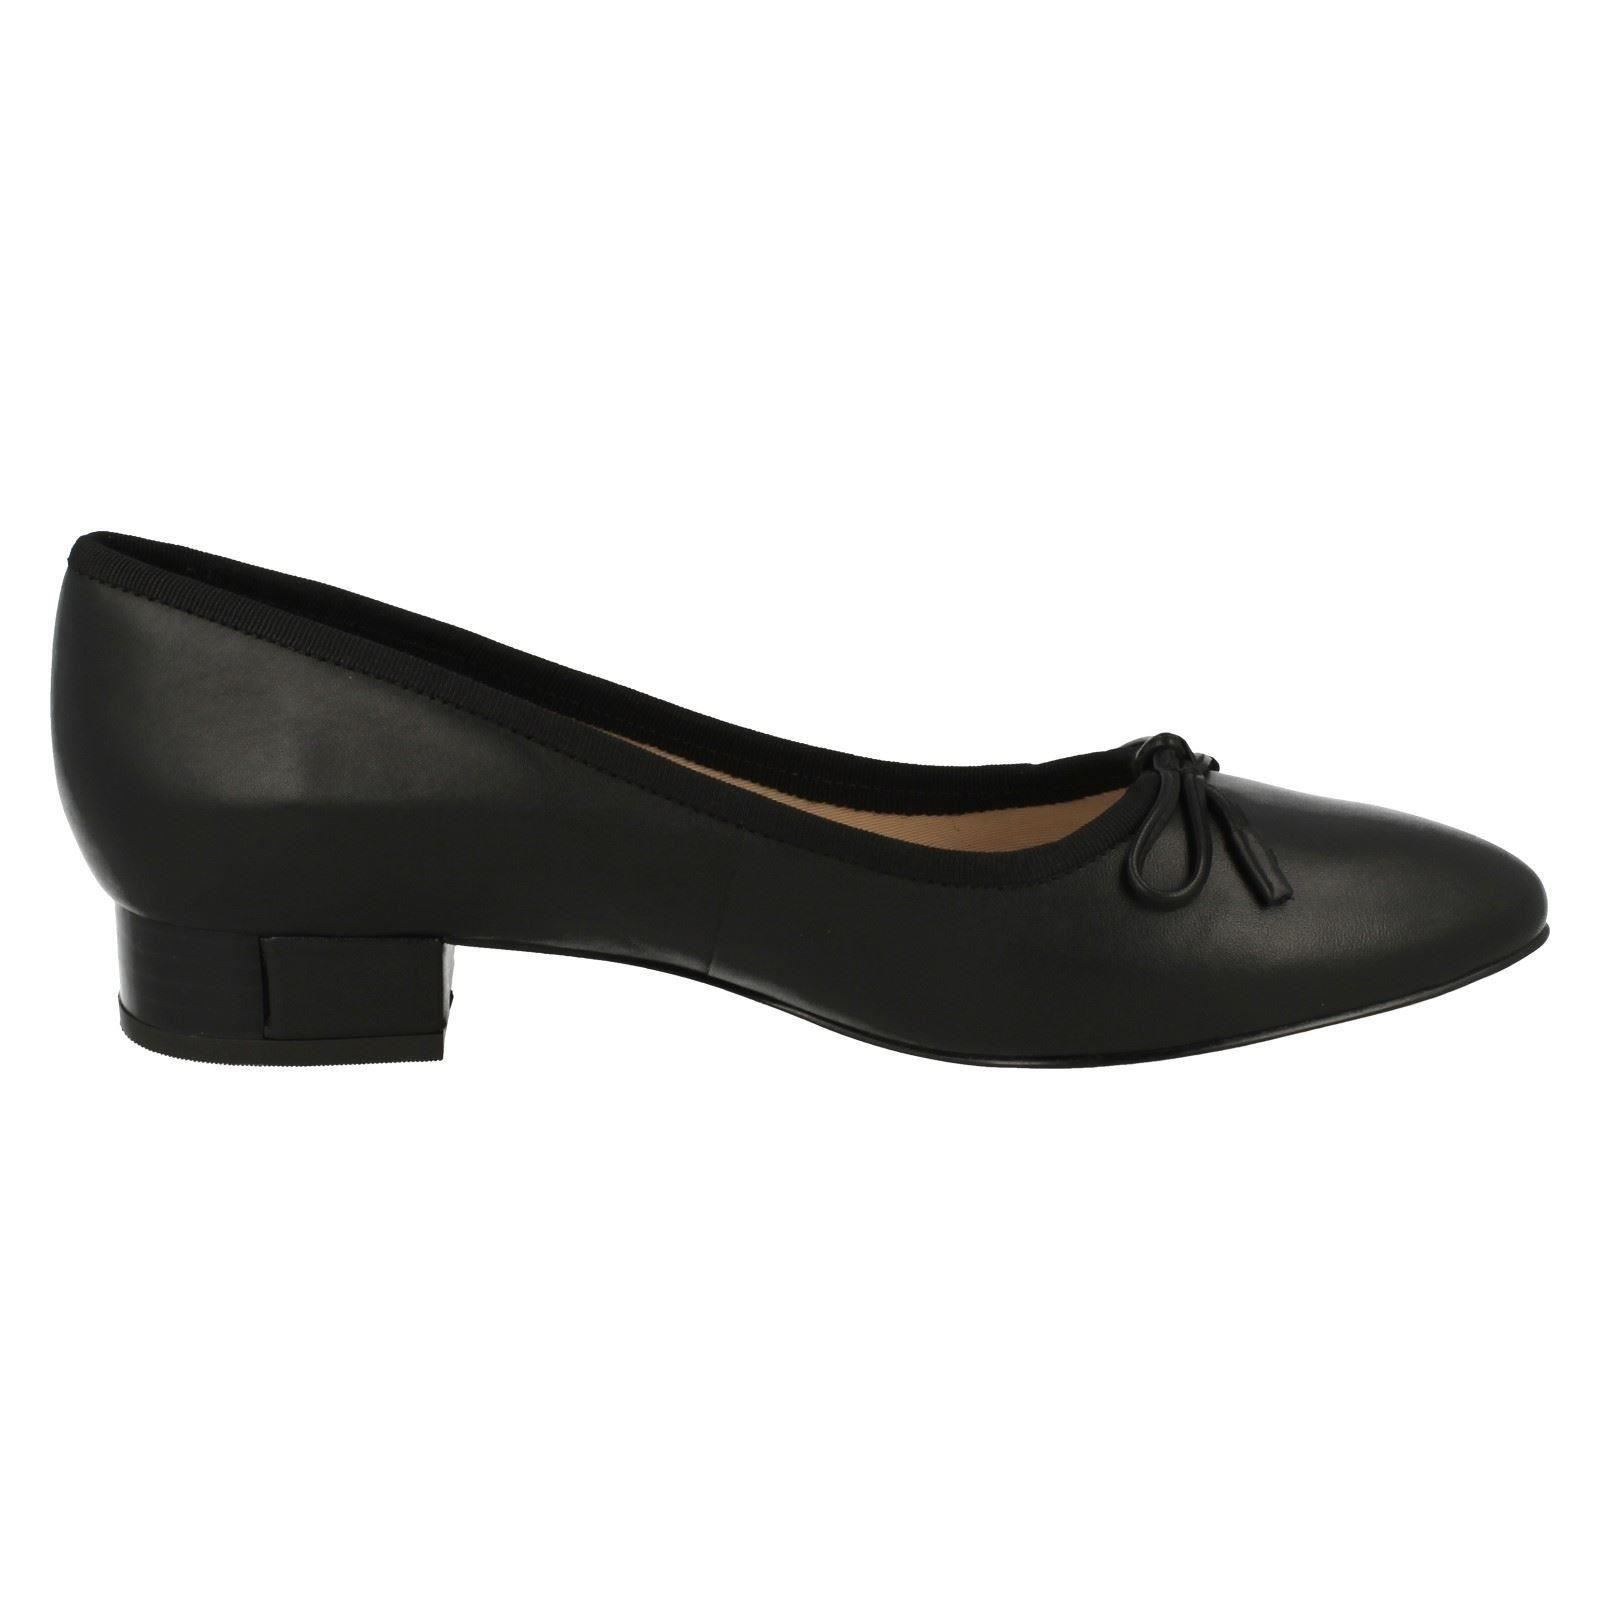 Ladies Clarks Low Heel Smart Slip On Shoes Eliberry Isla